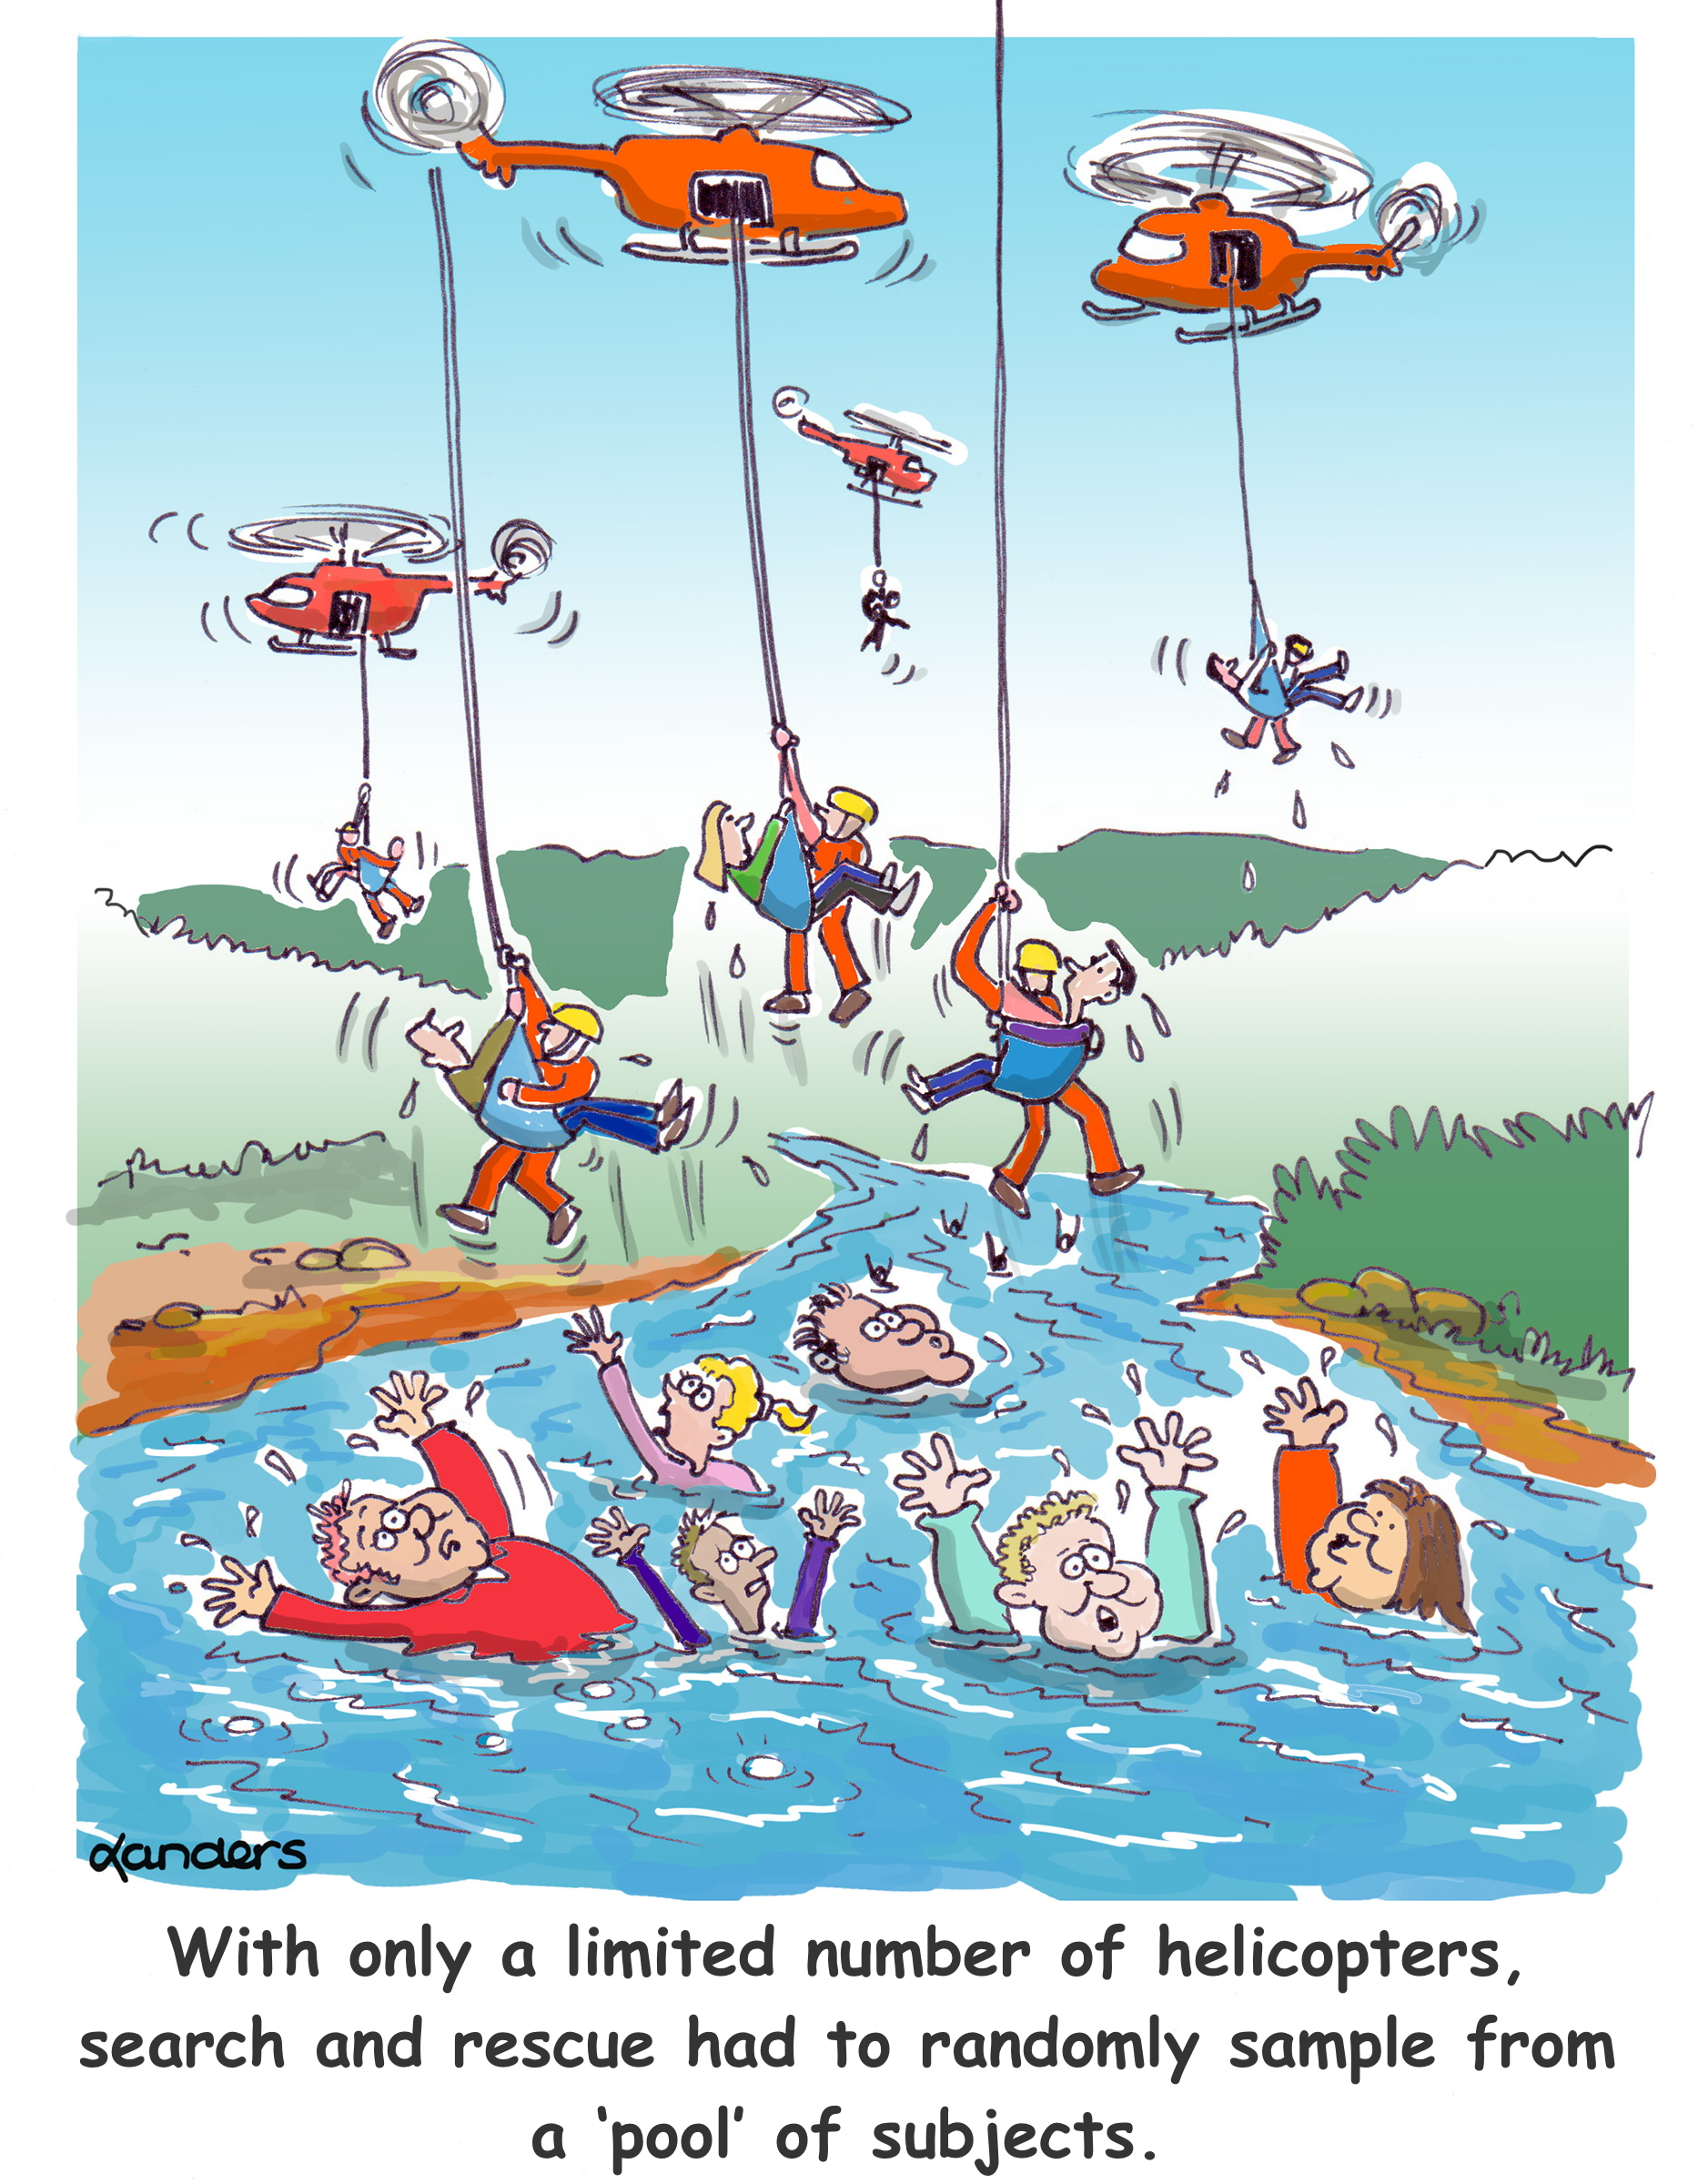 cartoon showing helicopter rescue of drowning people with caption